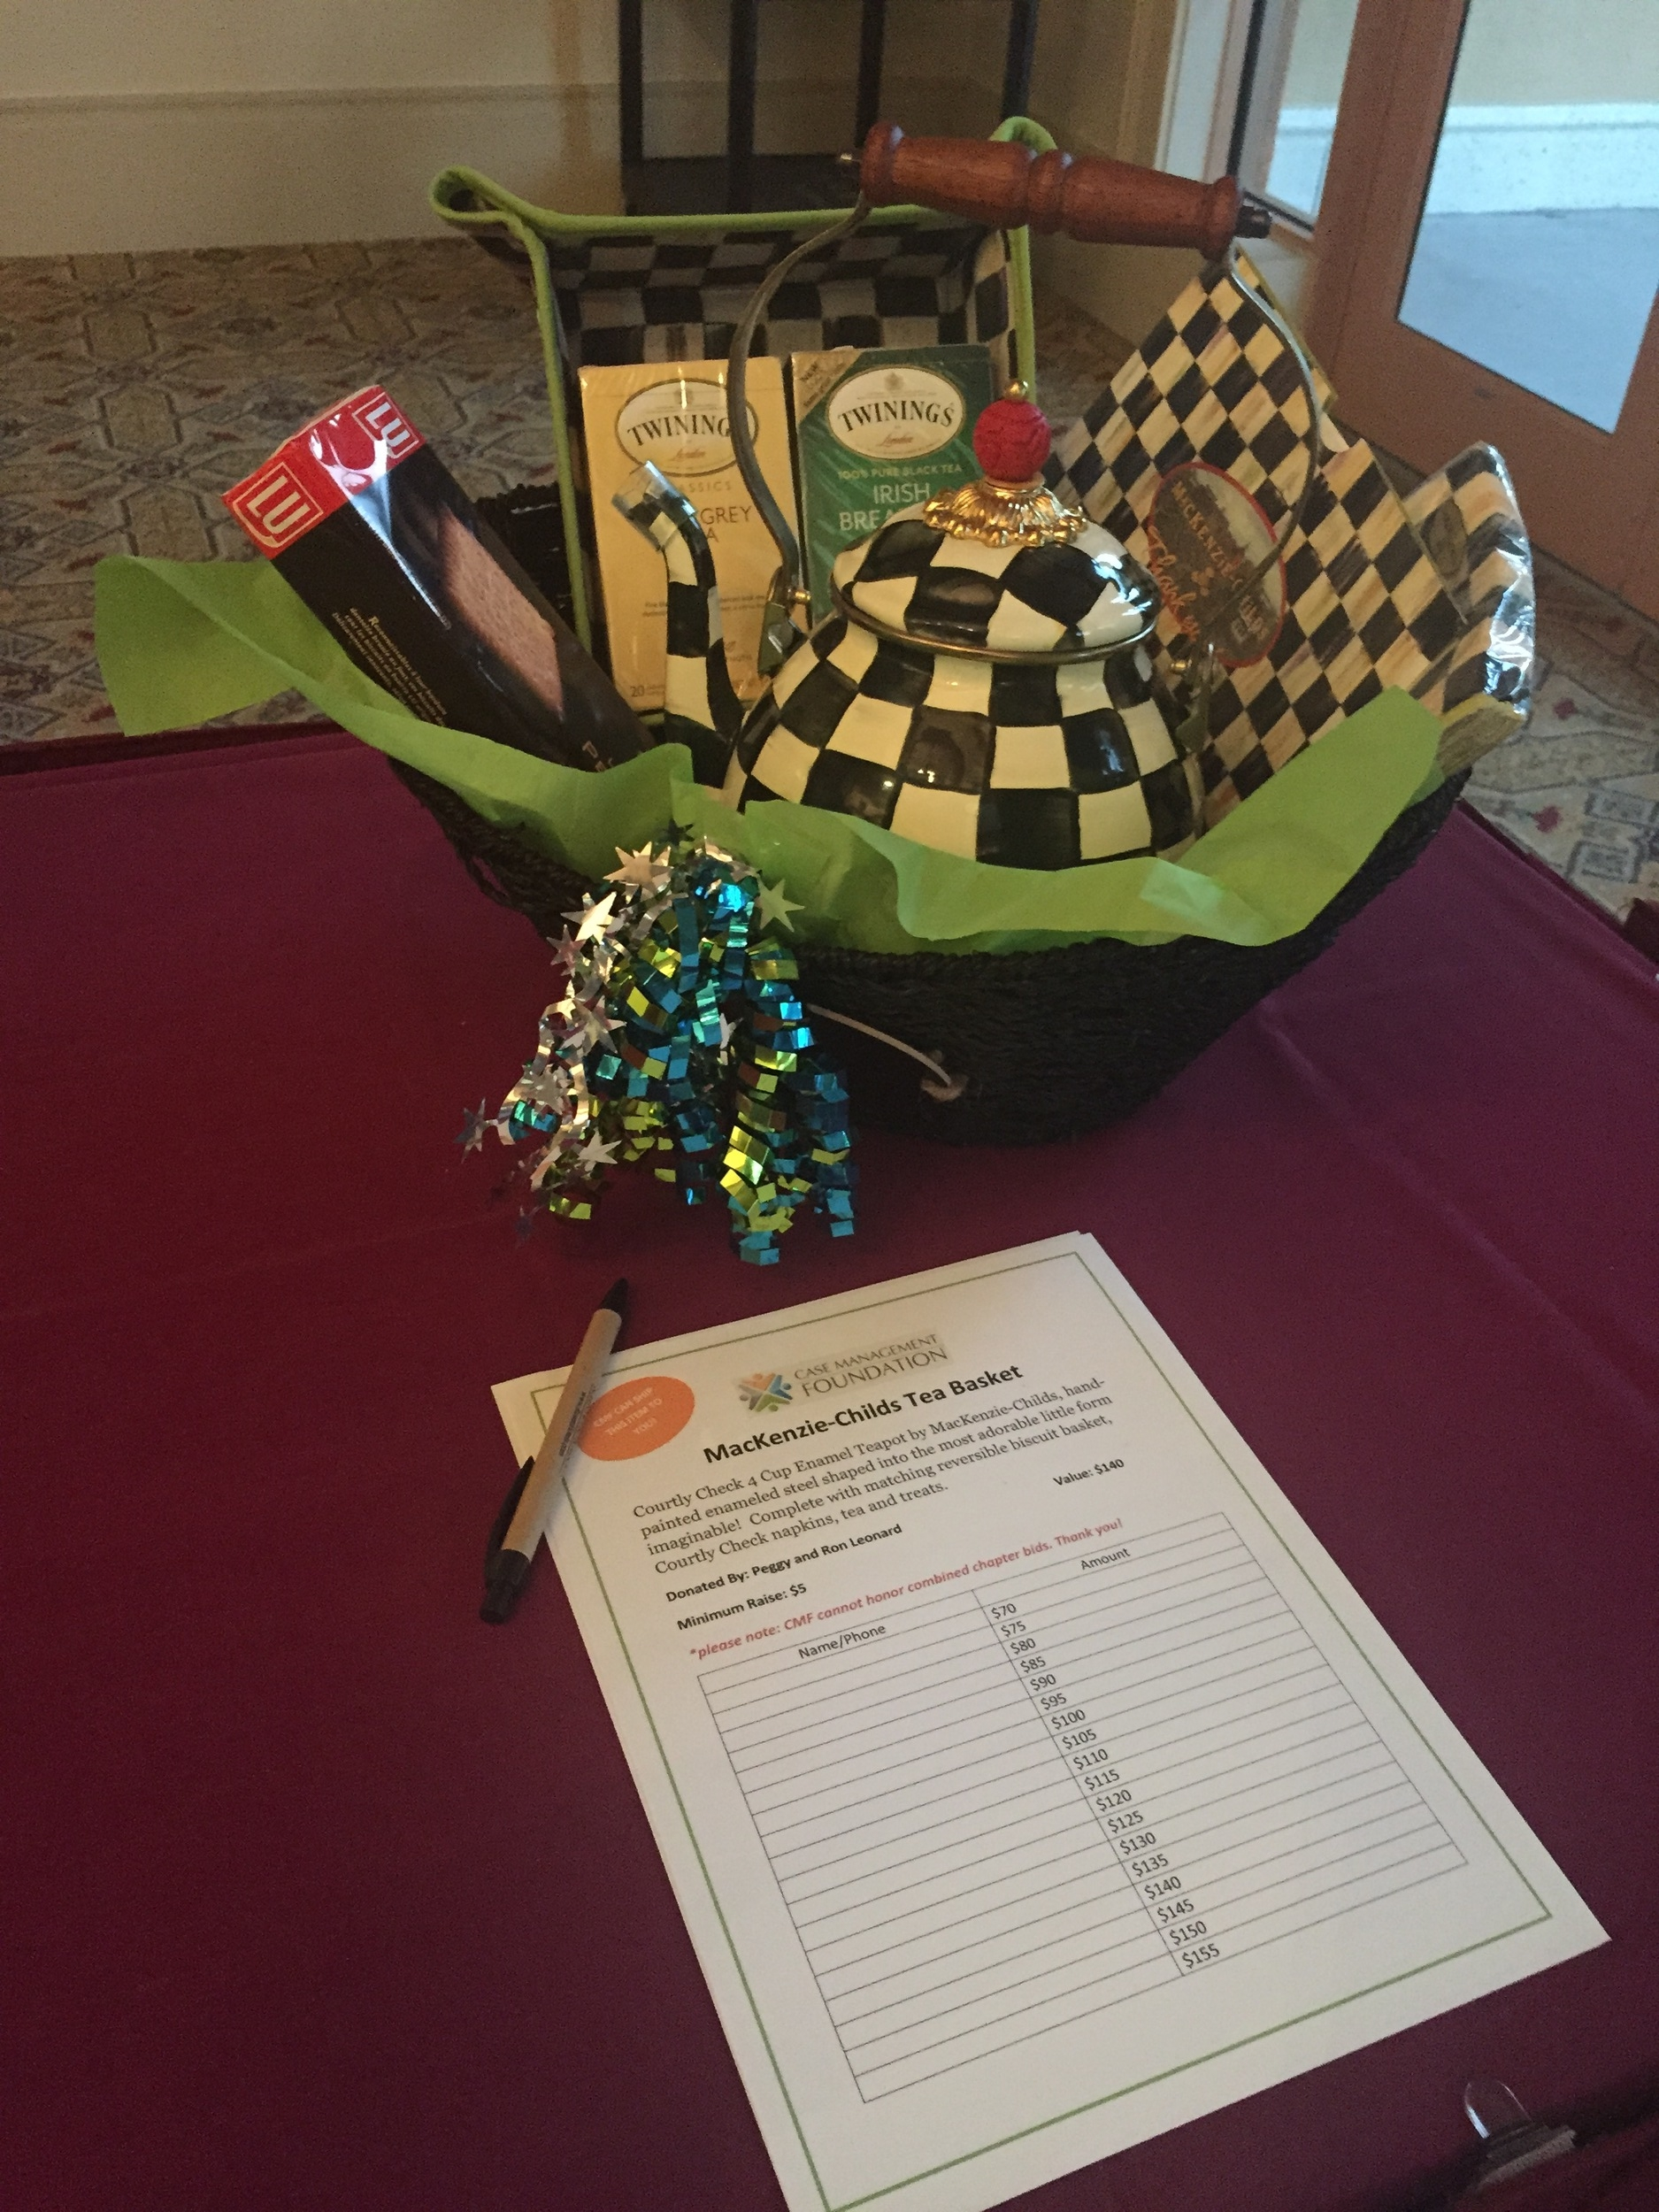 One of the donated baskets at our second annual fundraising auction